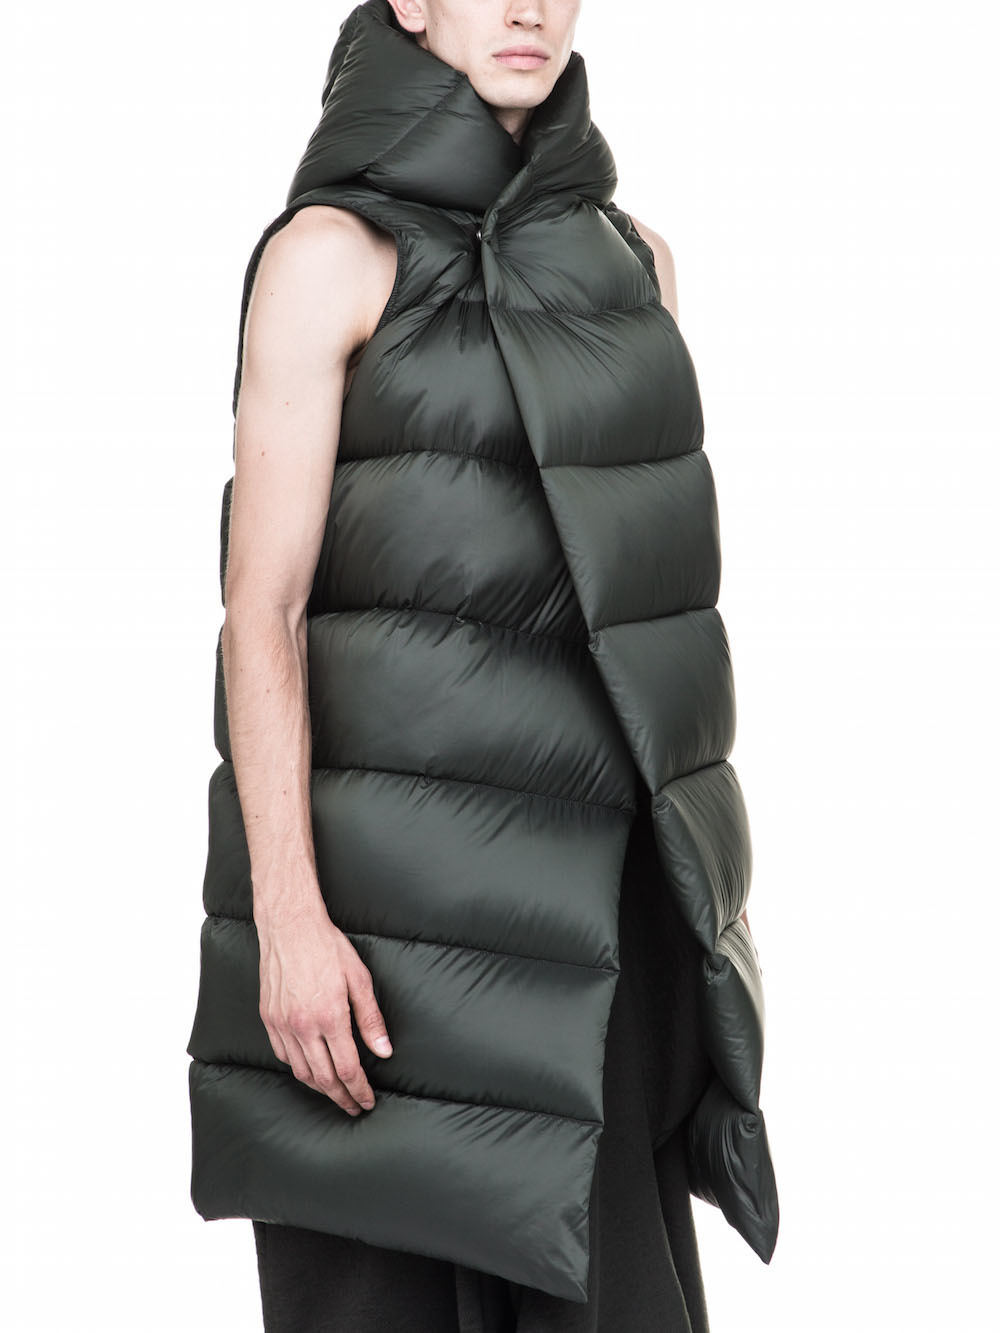 RICK OWENS FW17 GLITTER OFF-THE-RUNWAY LINER IN GREEN SLEEVELESS